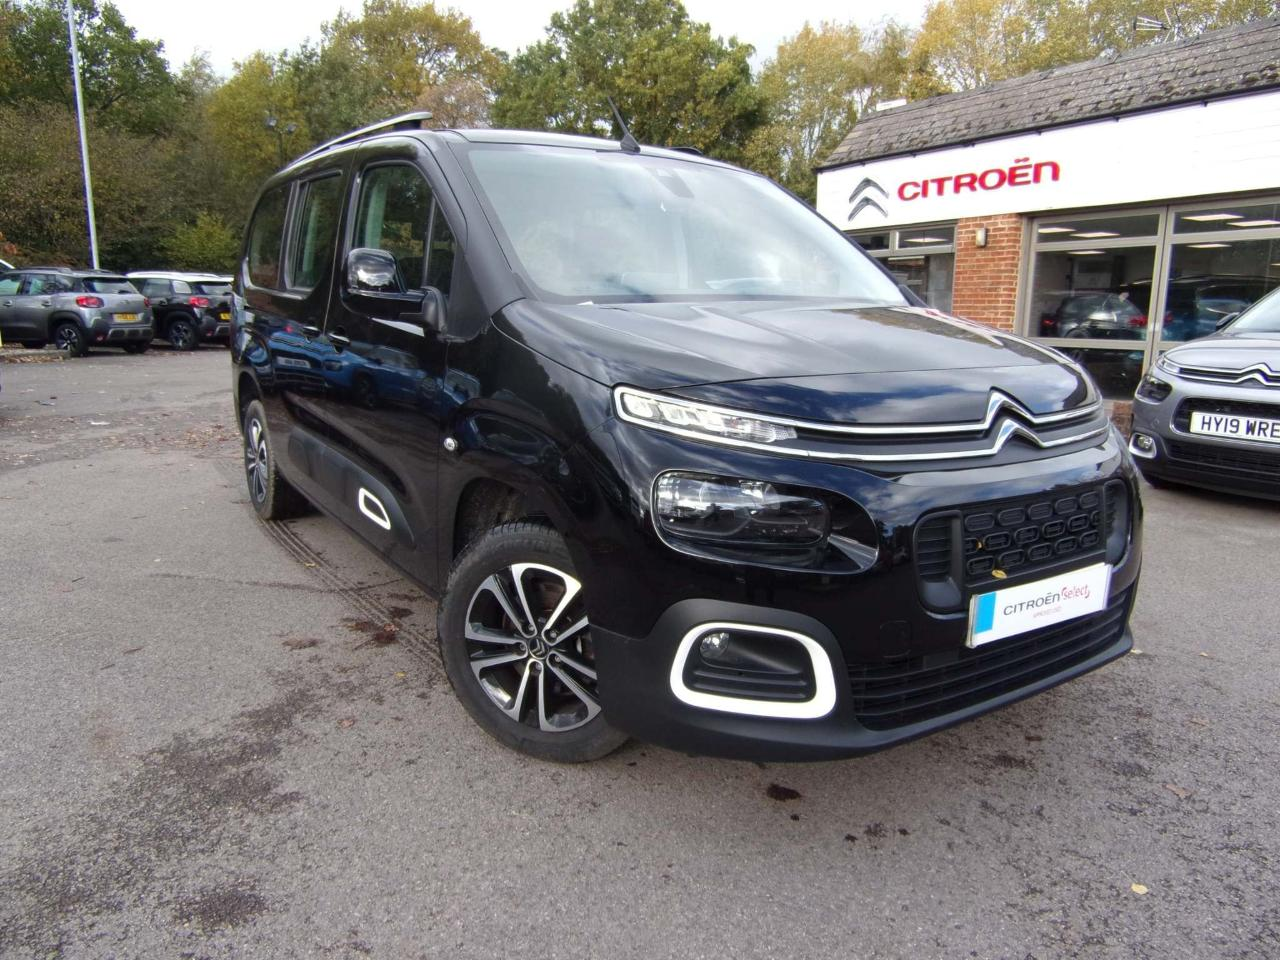 Citroën Berlingo 1.2 PureTech Flair (s/s) 5dr XL